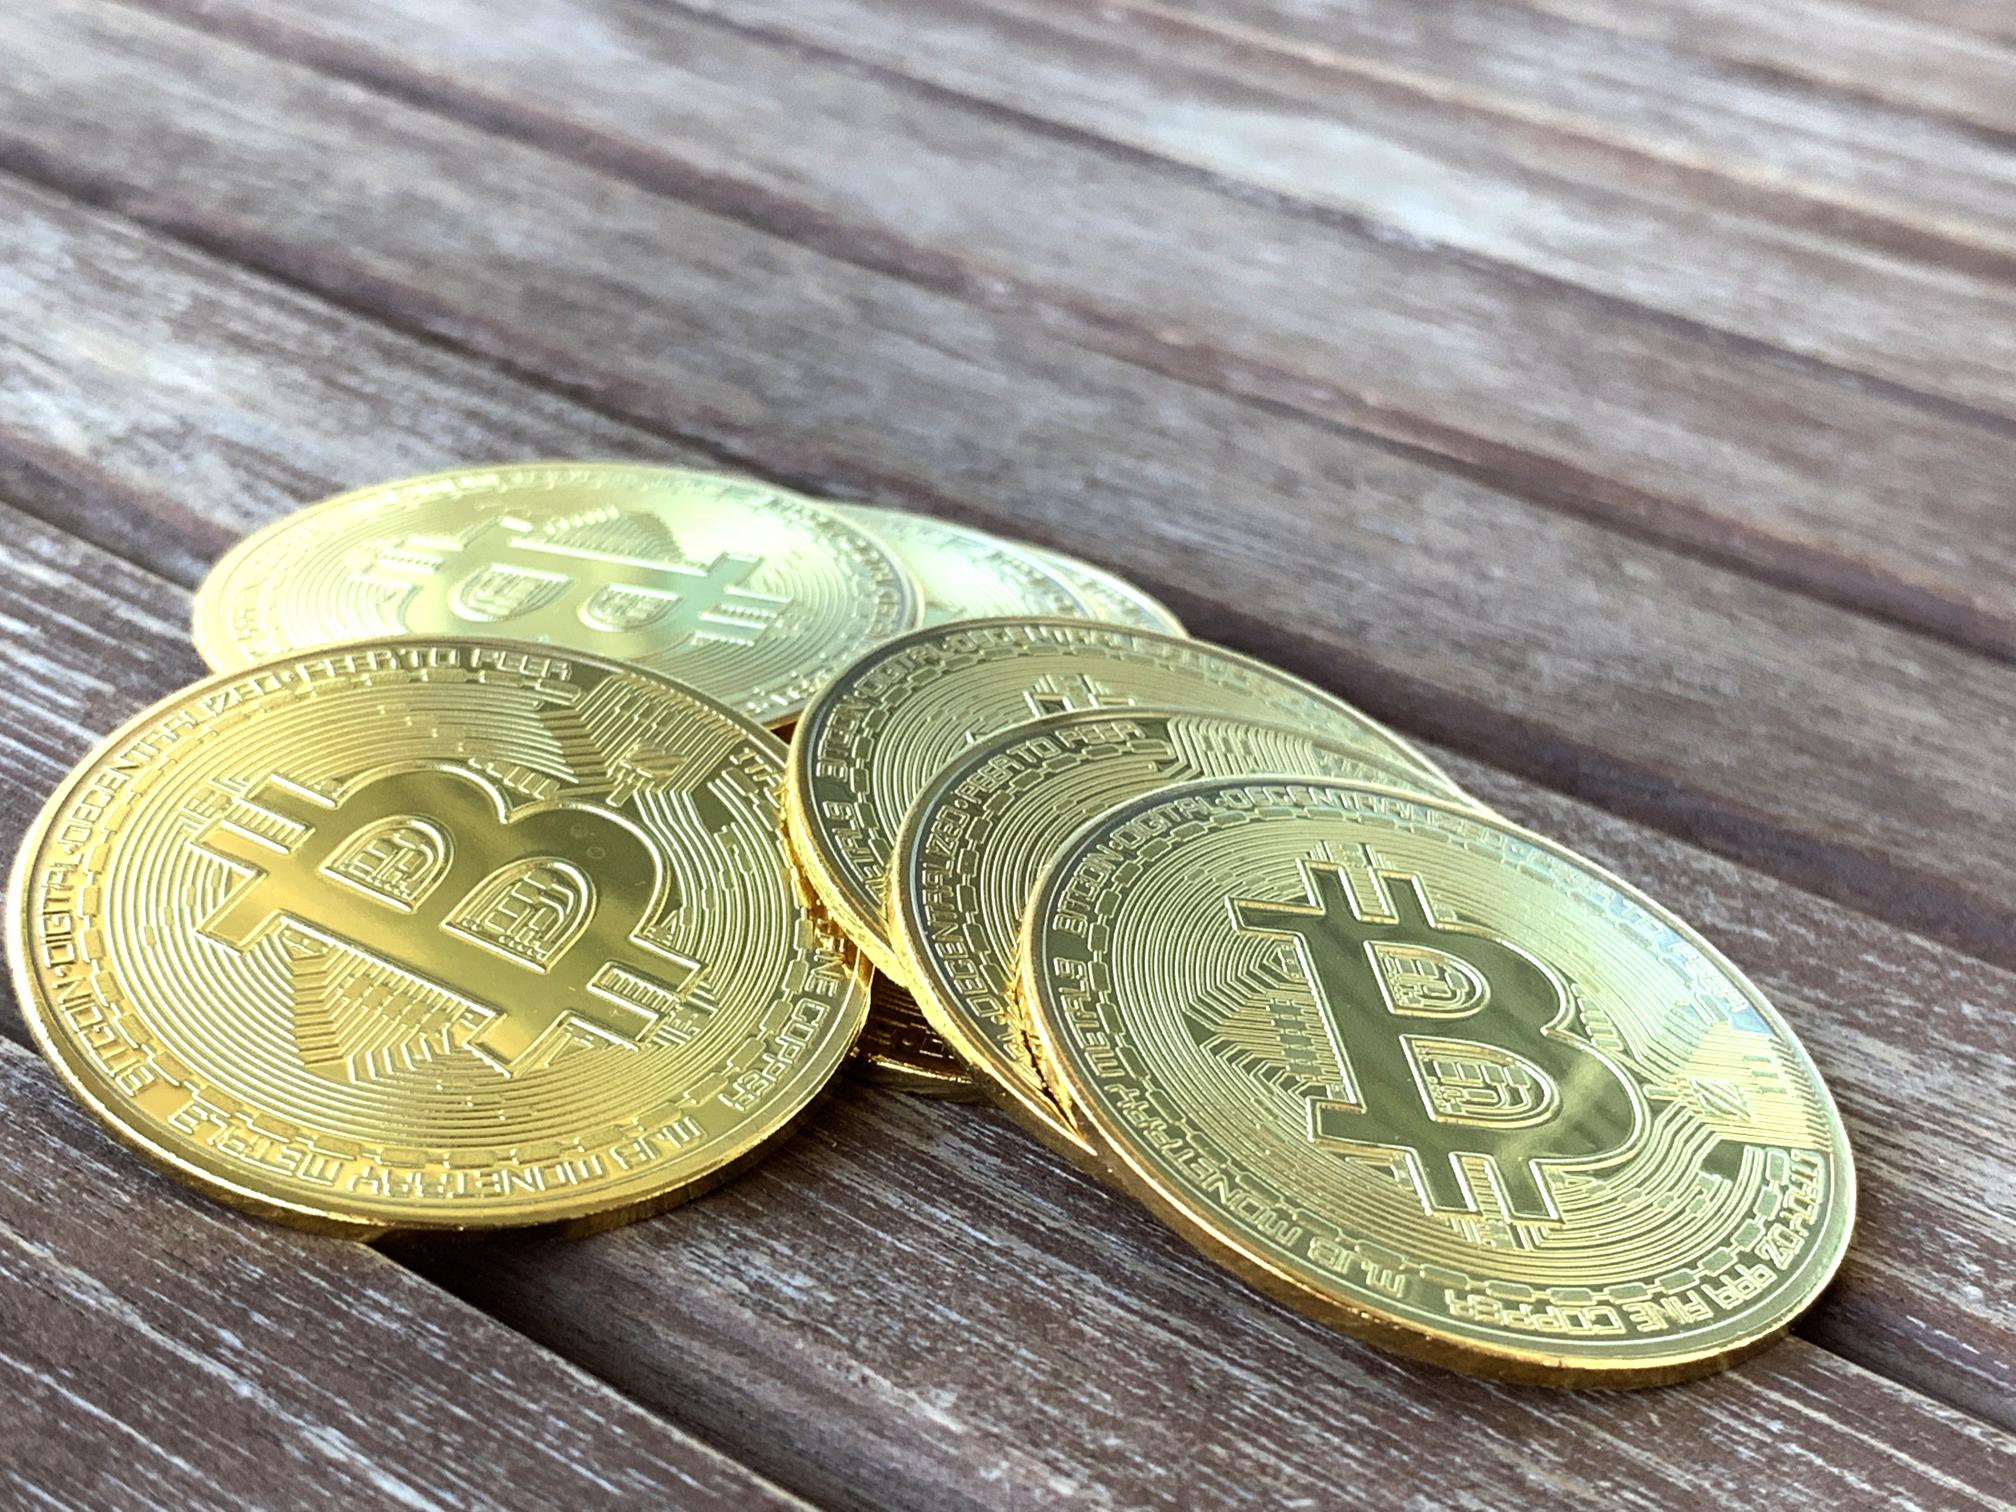 Bitcoin stack on wooden surface